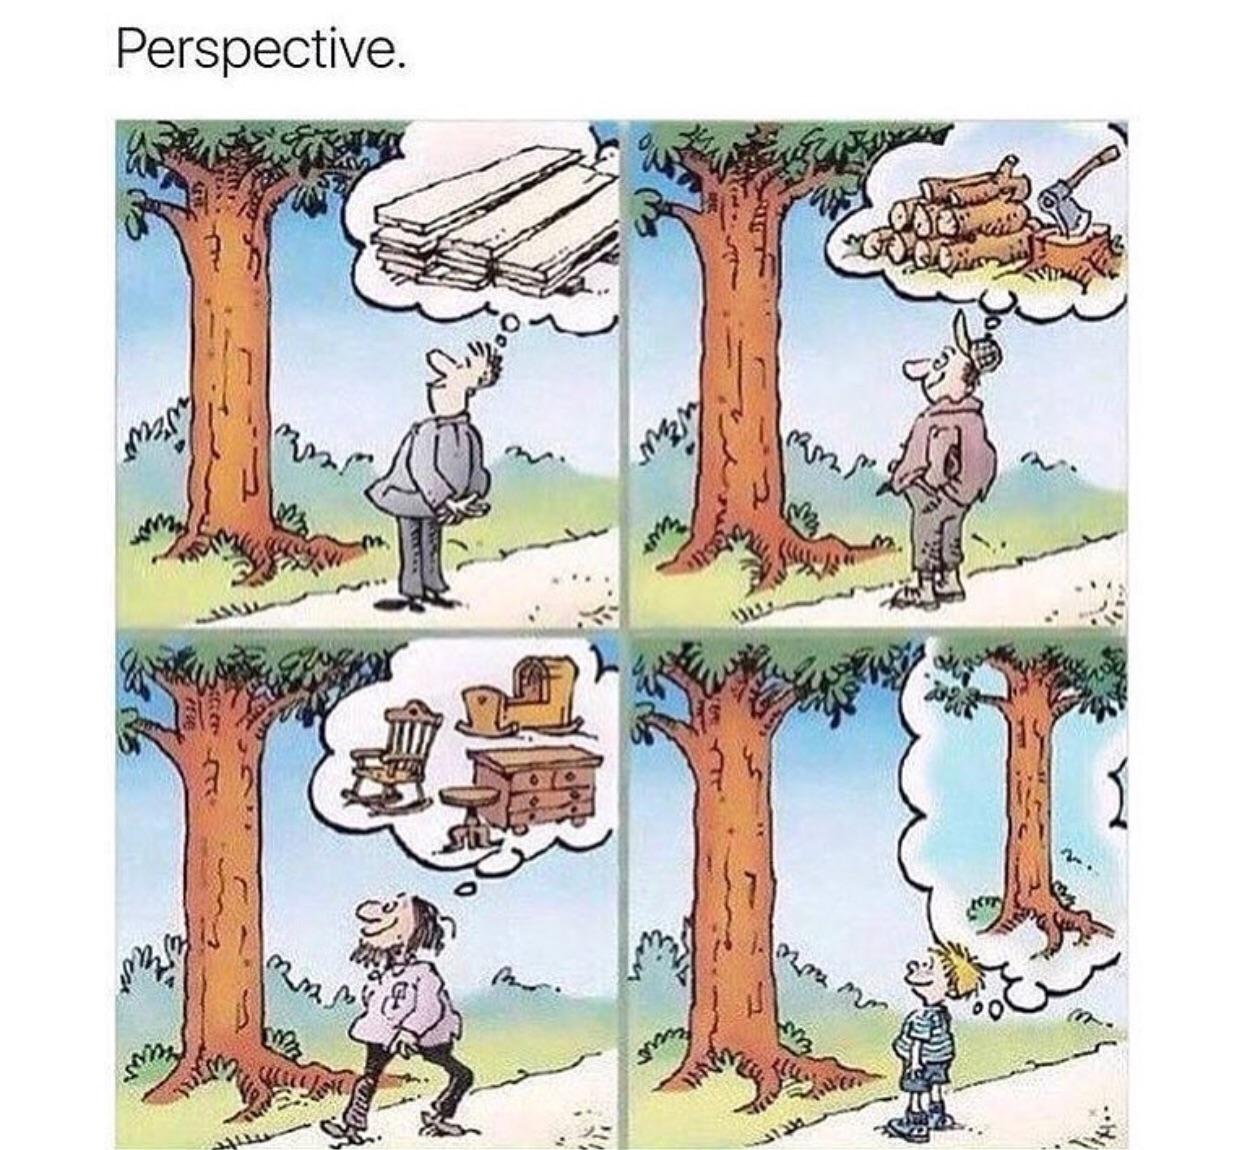 Perspective. https://inspirational.ly